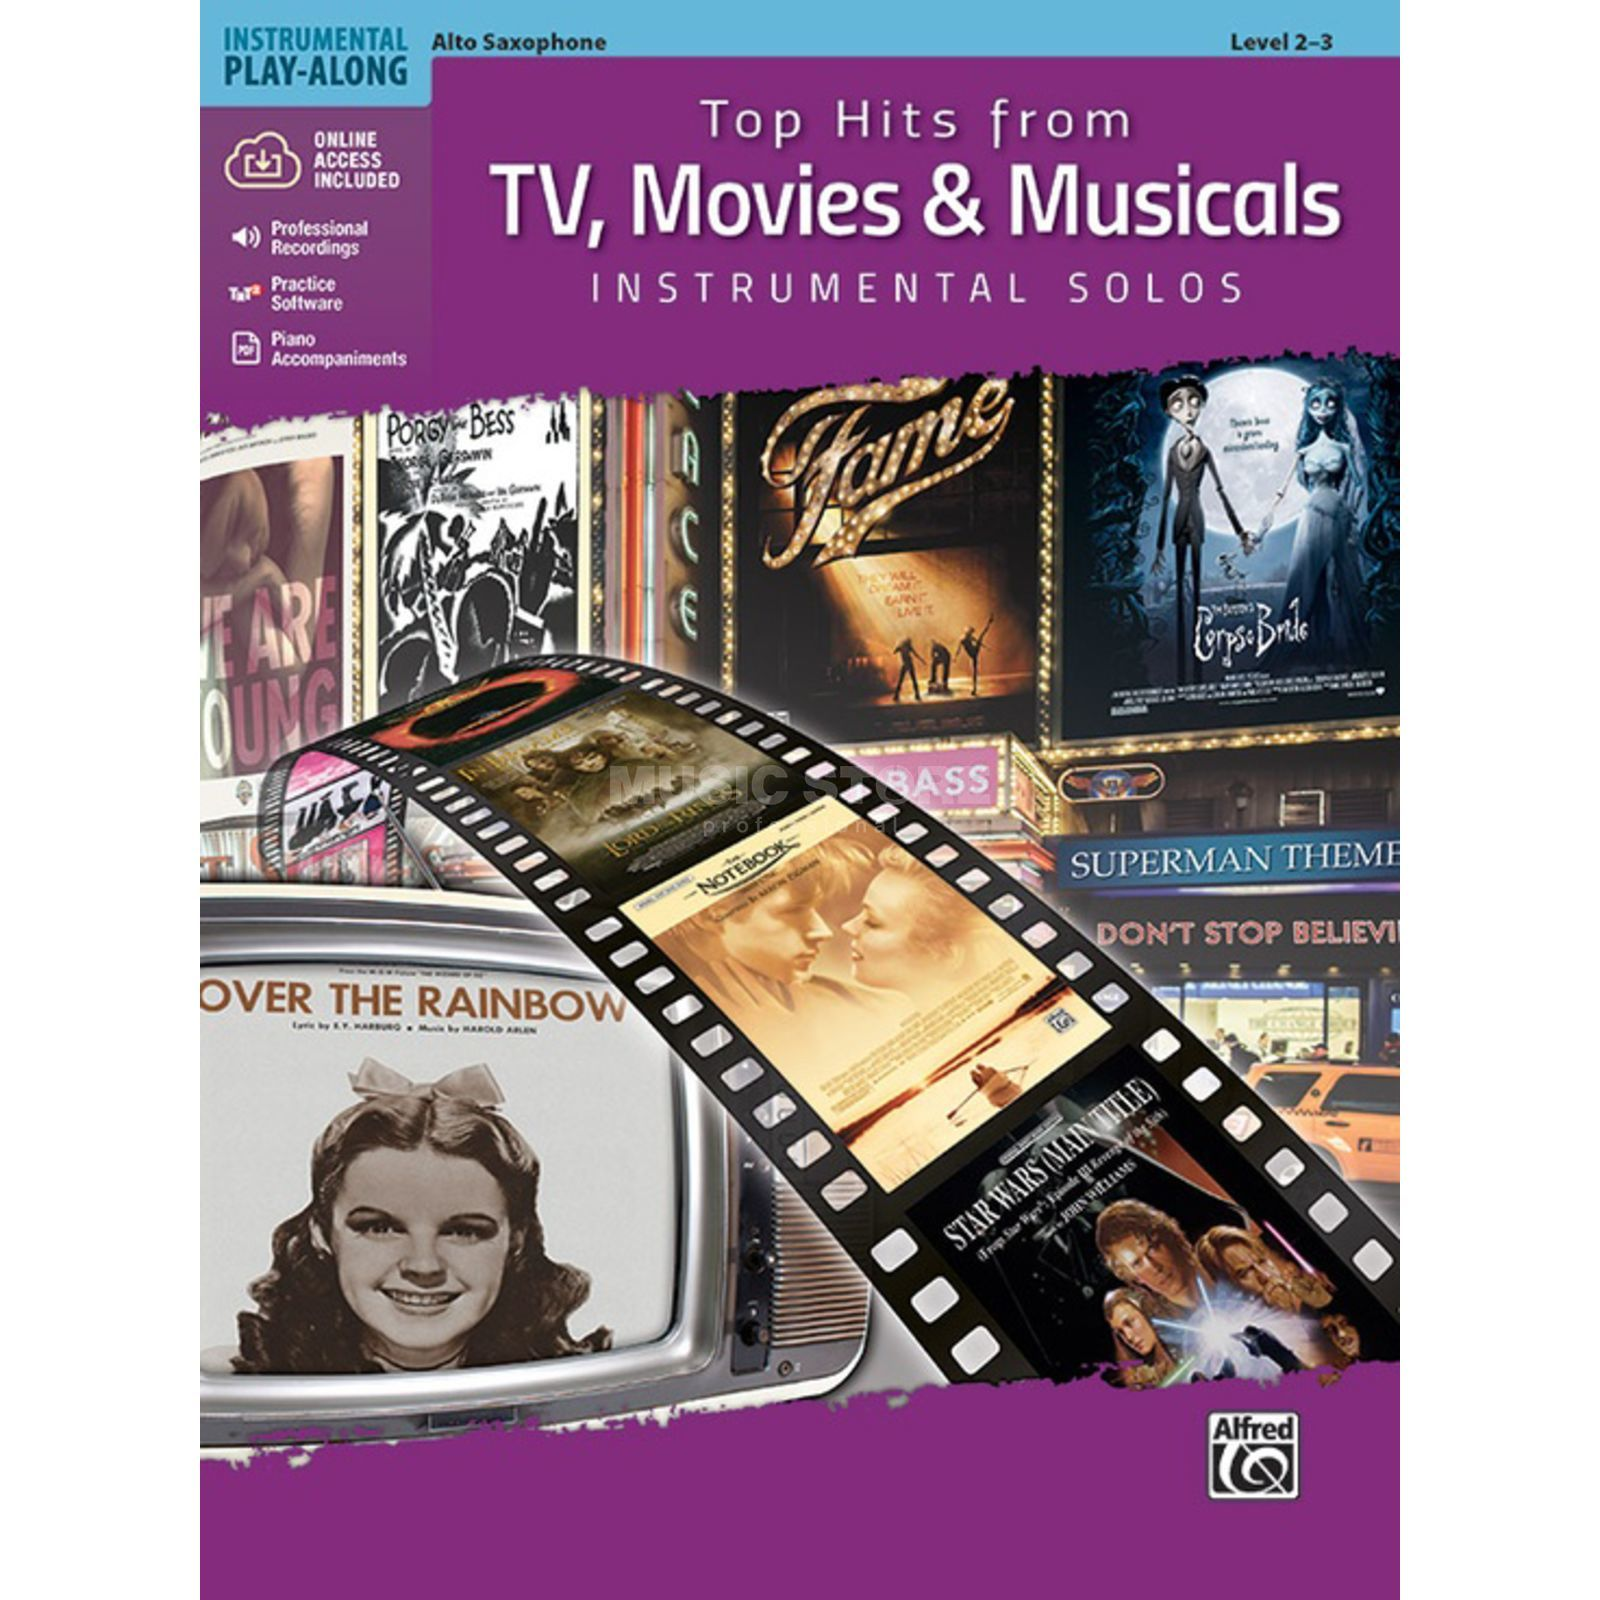 Alfred Music Top Hits from TV, Movies & Musicals - Alto Sax Produktbillede